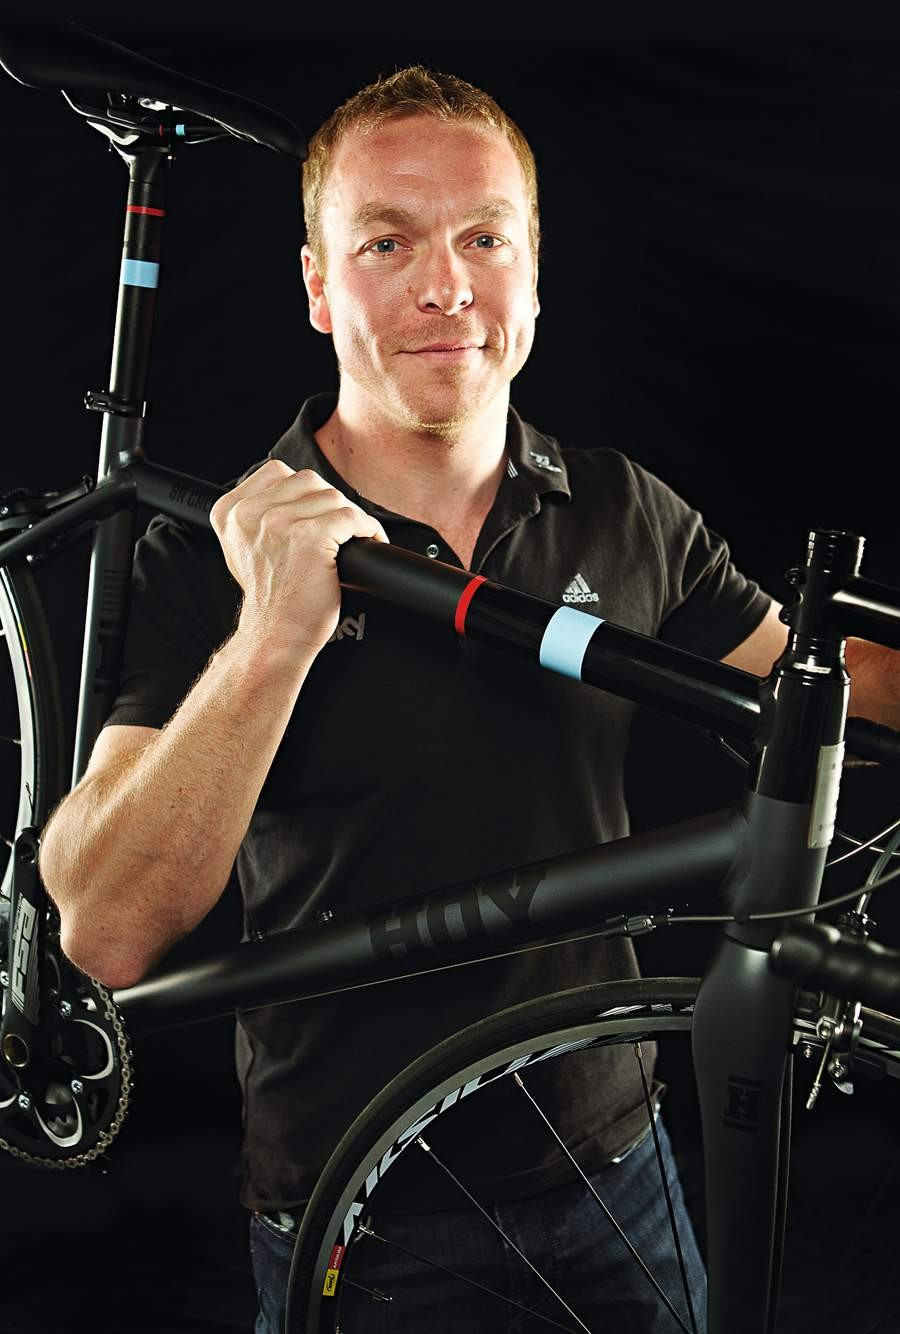 Sir Chris hoy had such a good time at the London Bike Show last year, he's chosen the 2014 show as his debut expo for his new bike brand